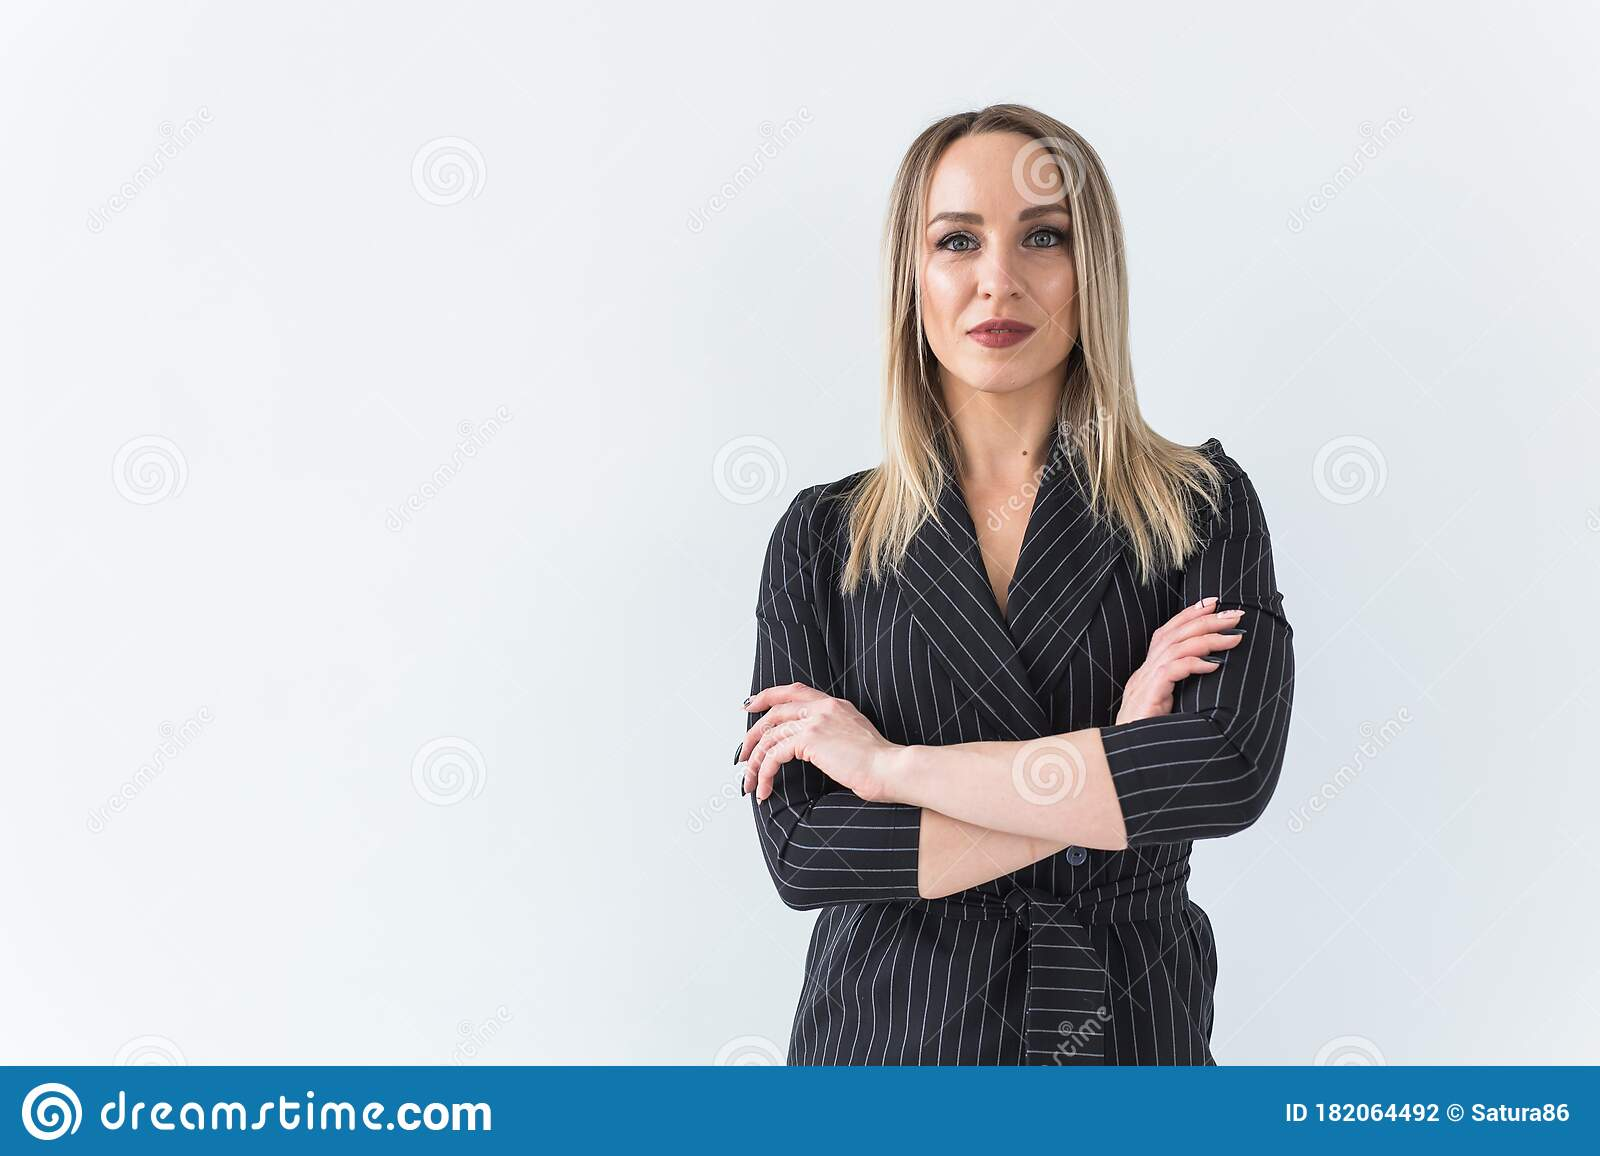 Fashion Concept Portrait Of Business Woman In A Suit On White Background With Copy Space Stock Photo Image Of Happy Adult 182064492